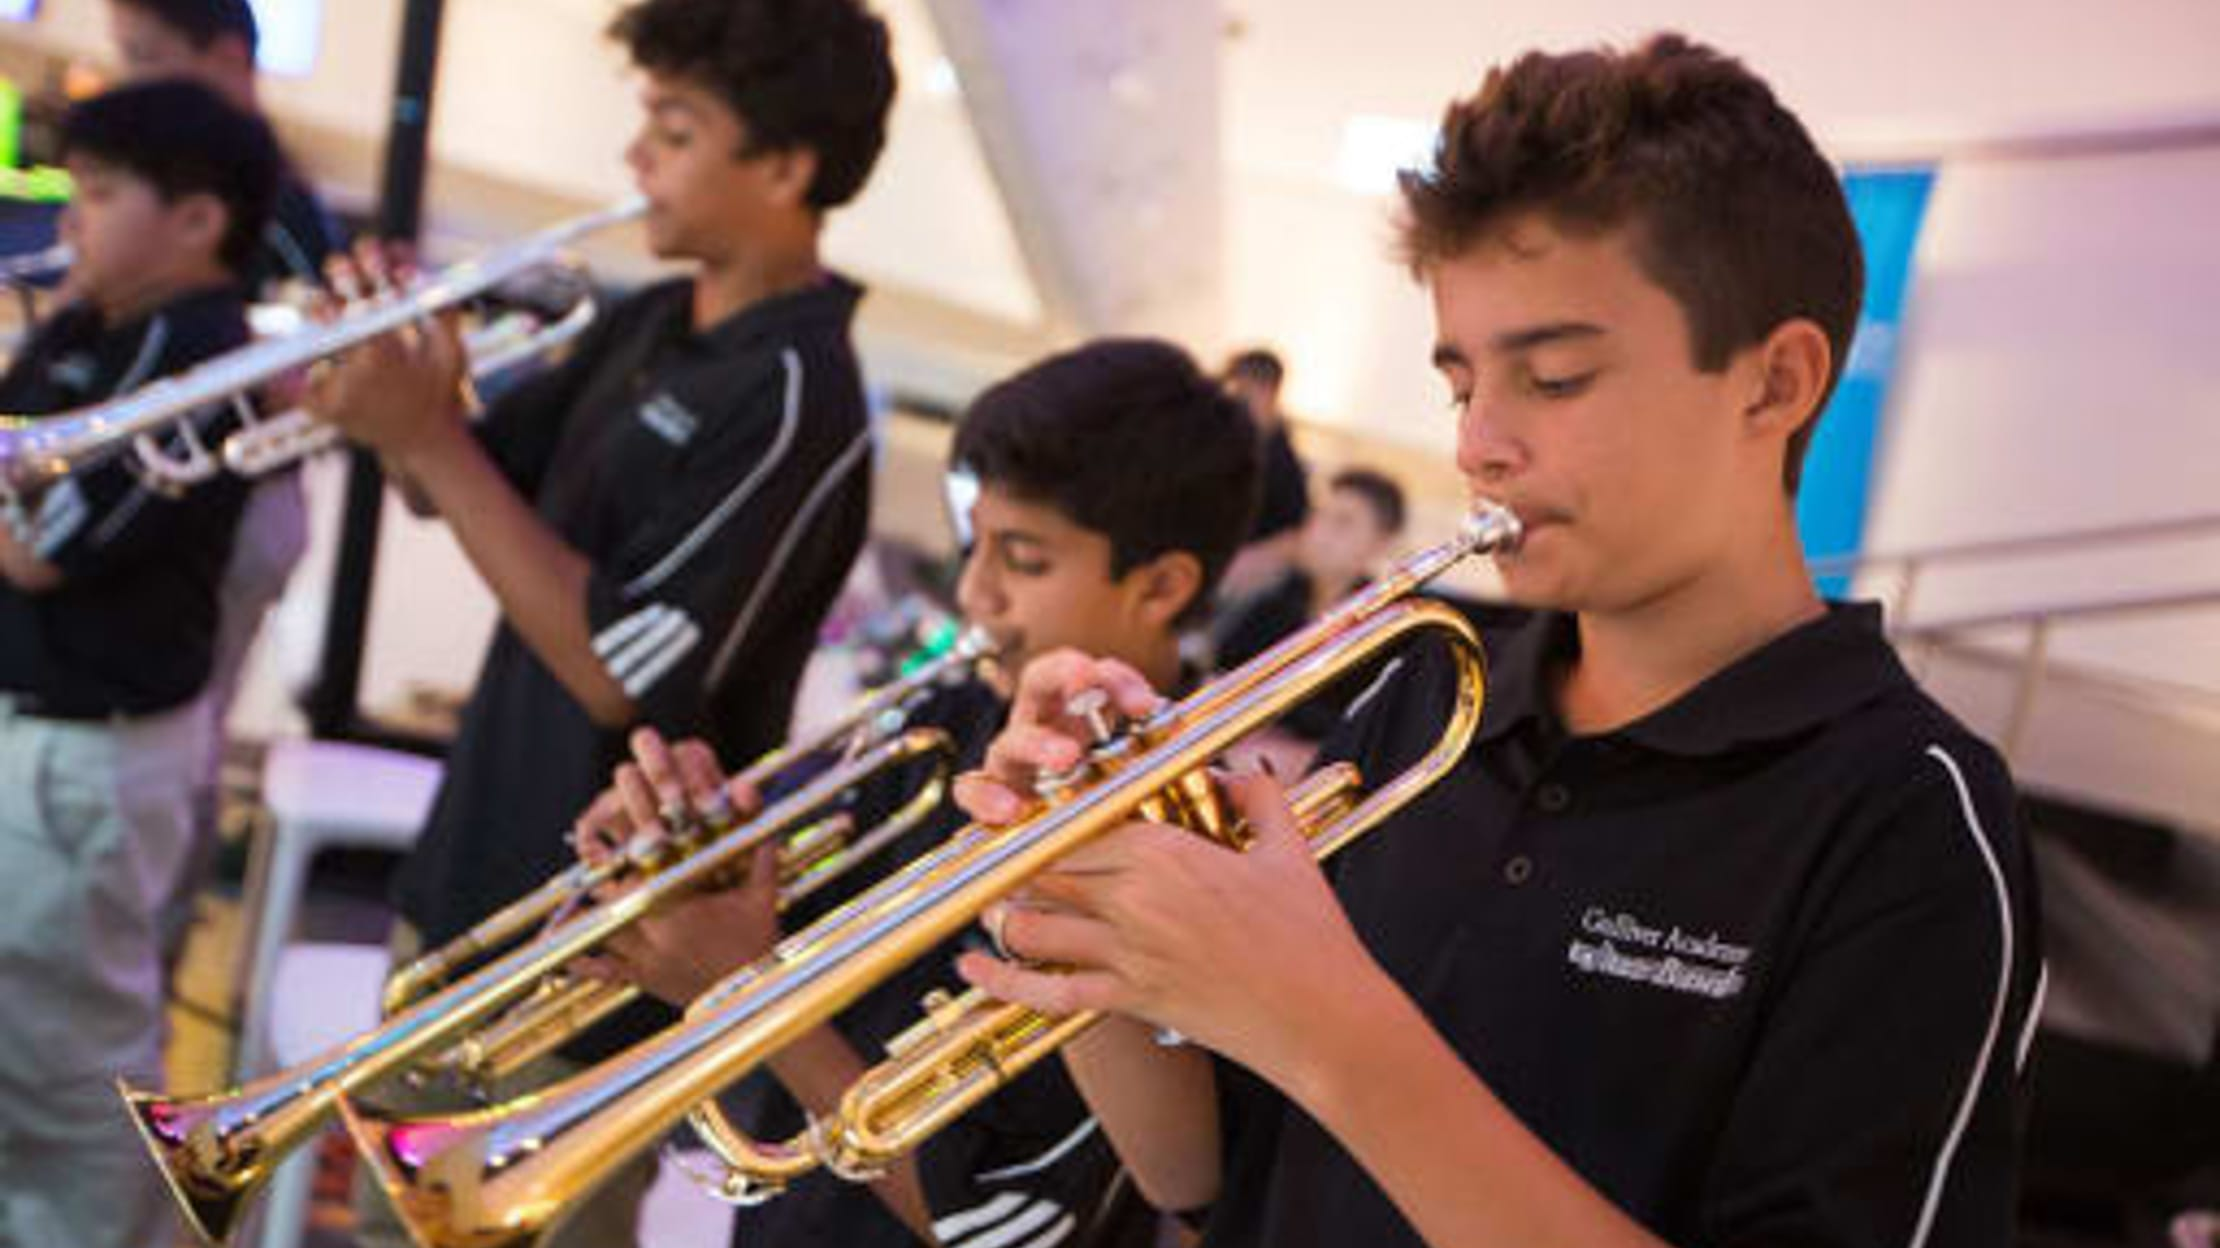 Middle school students in jazz class